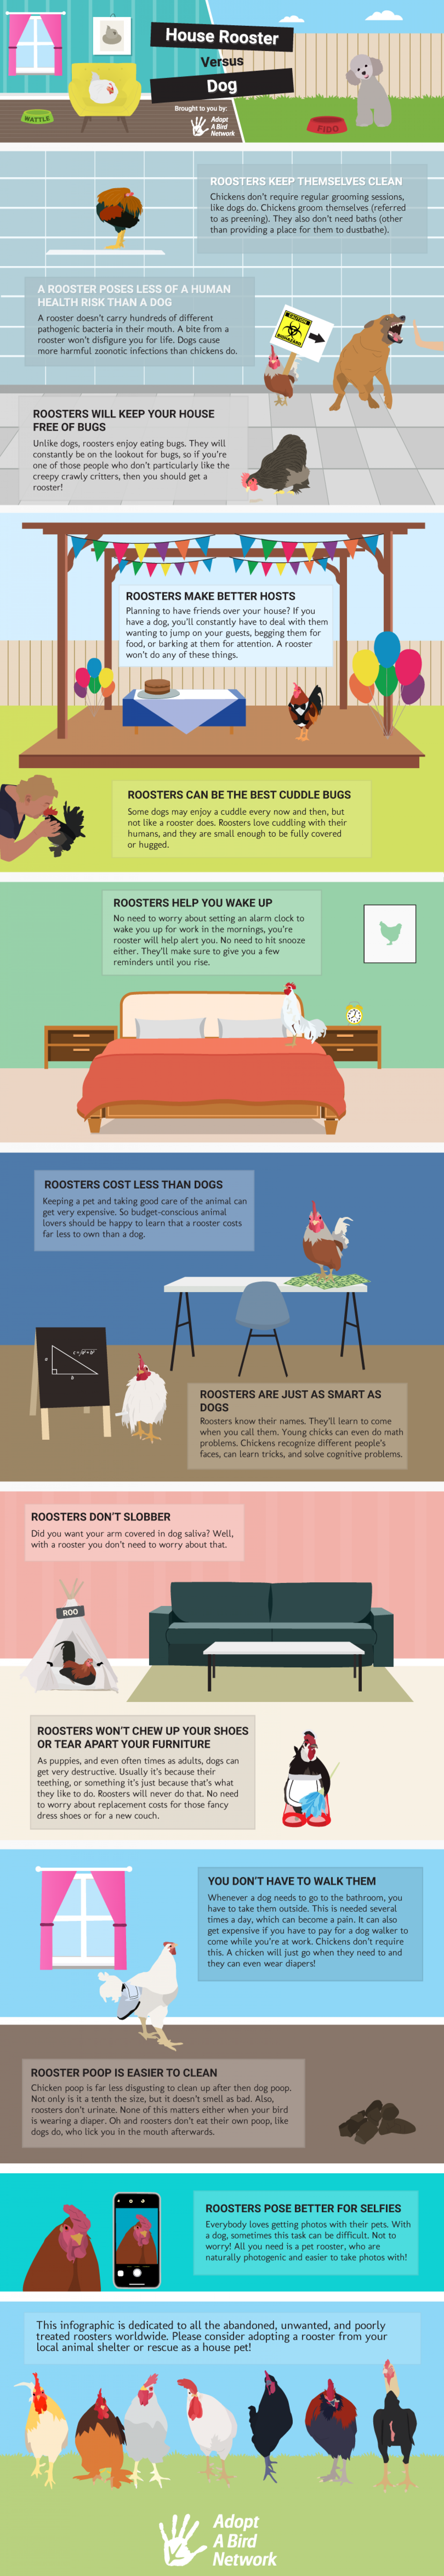 House Rooster versus a Dog Infographic